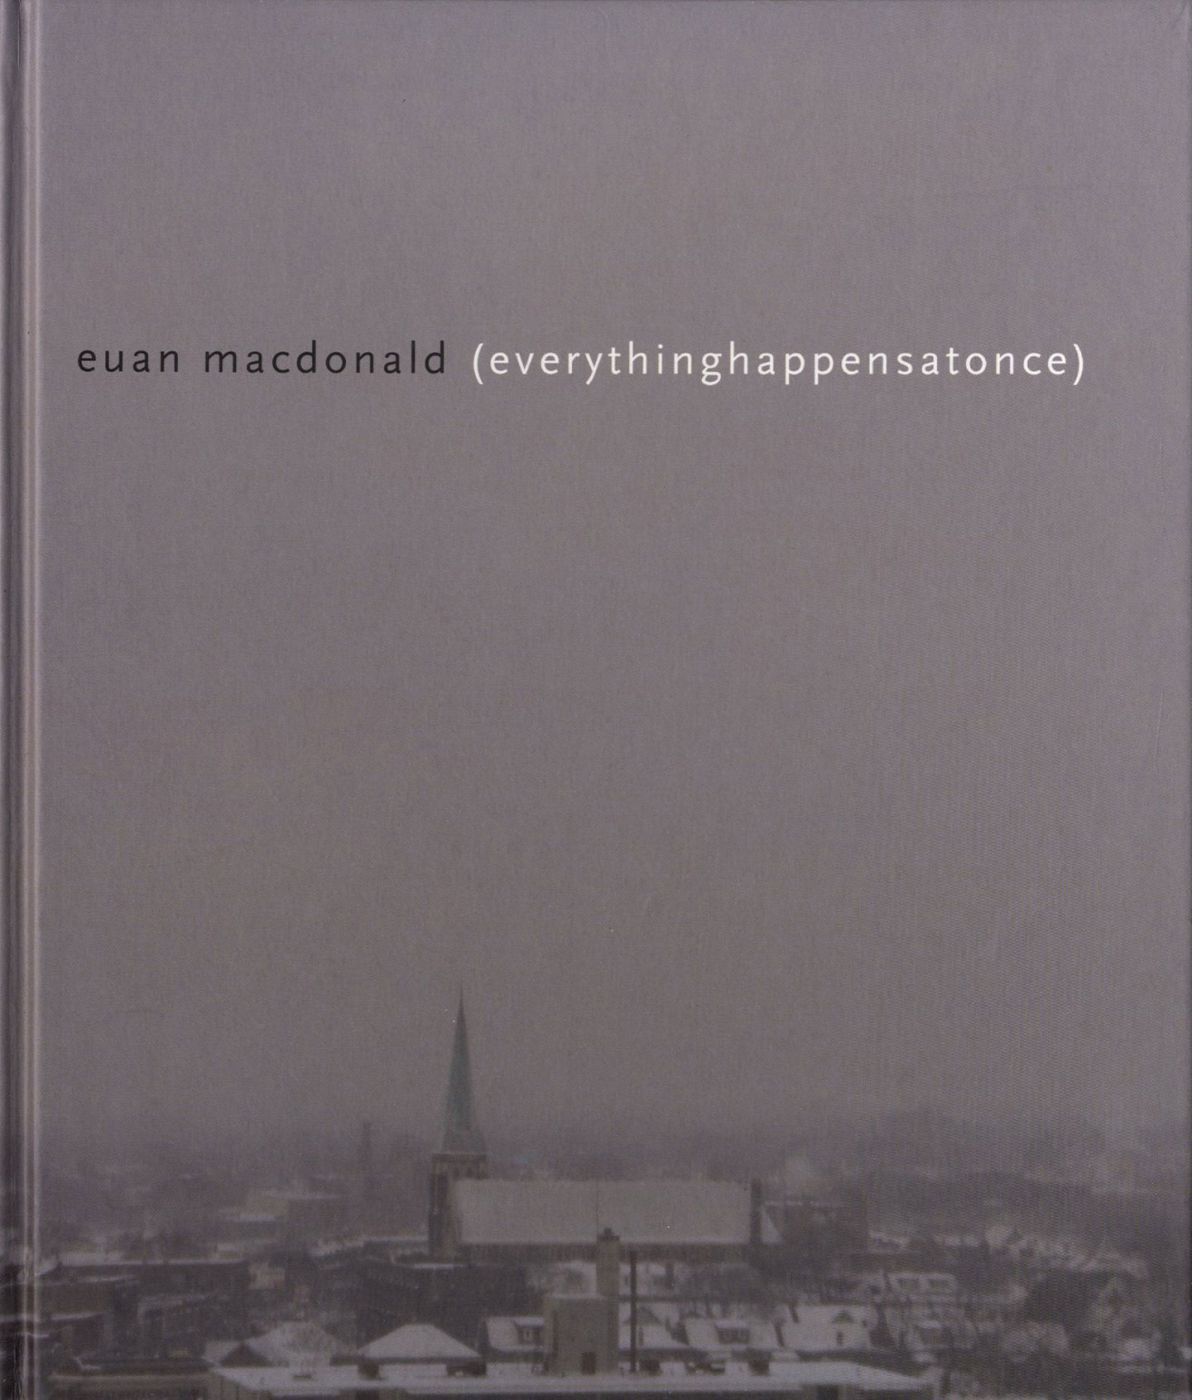 Euan Macdonald (everythinghappensatonce)